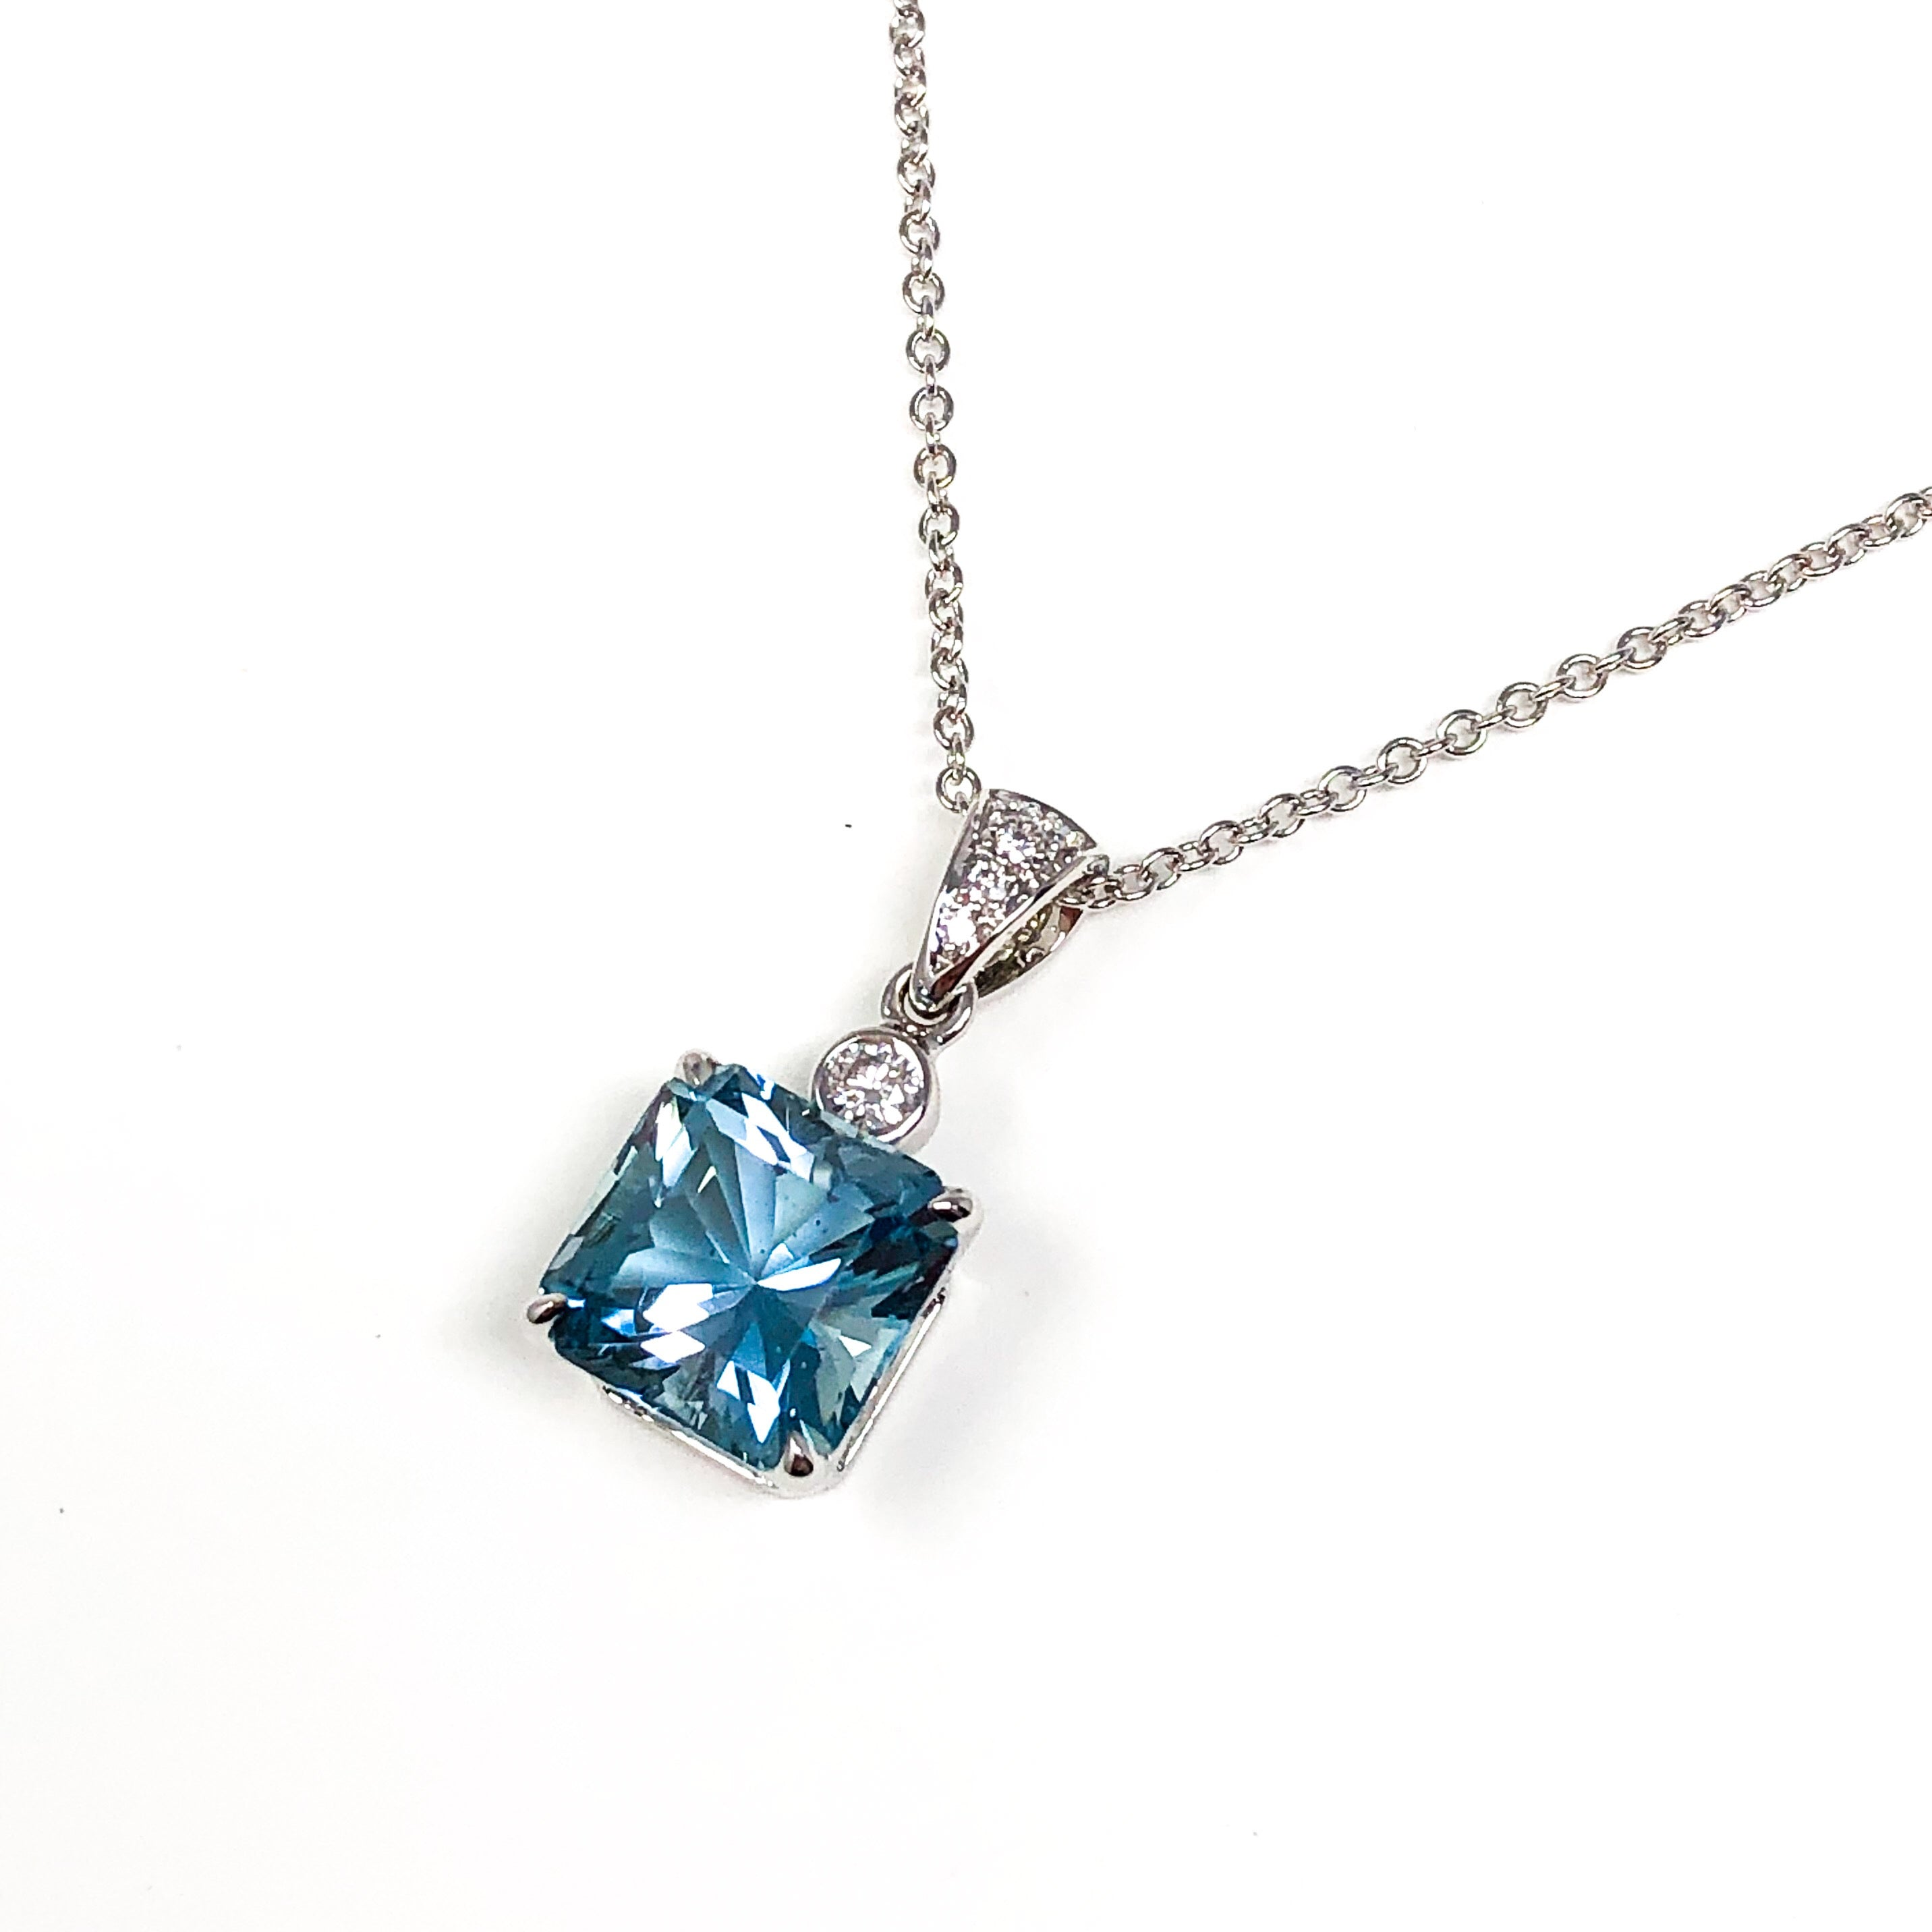 18kt White Gold Aquamarine and Diamond Pendant